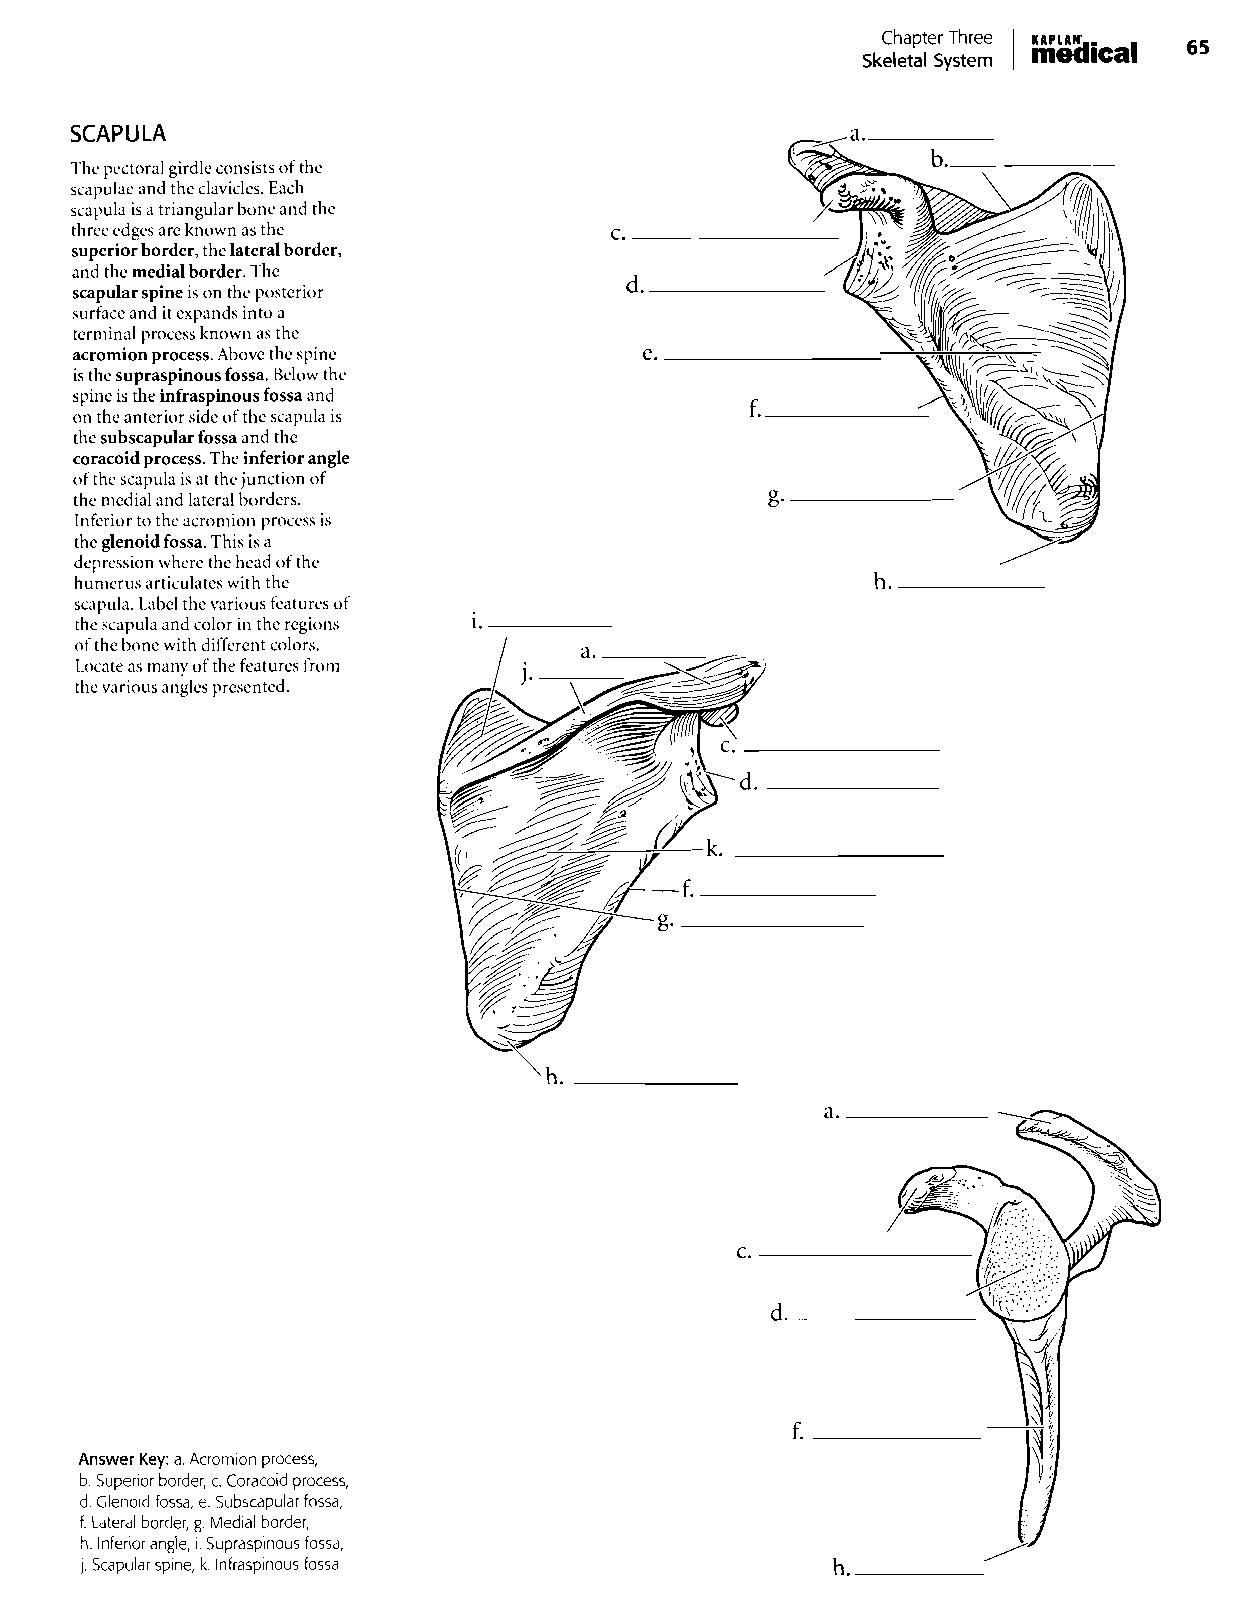 Kaplan Anatomy Coloring Book.pdf | boudli | Pinterest | Anatomy